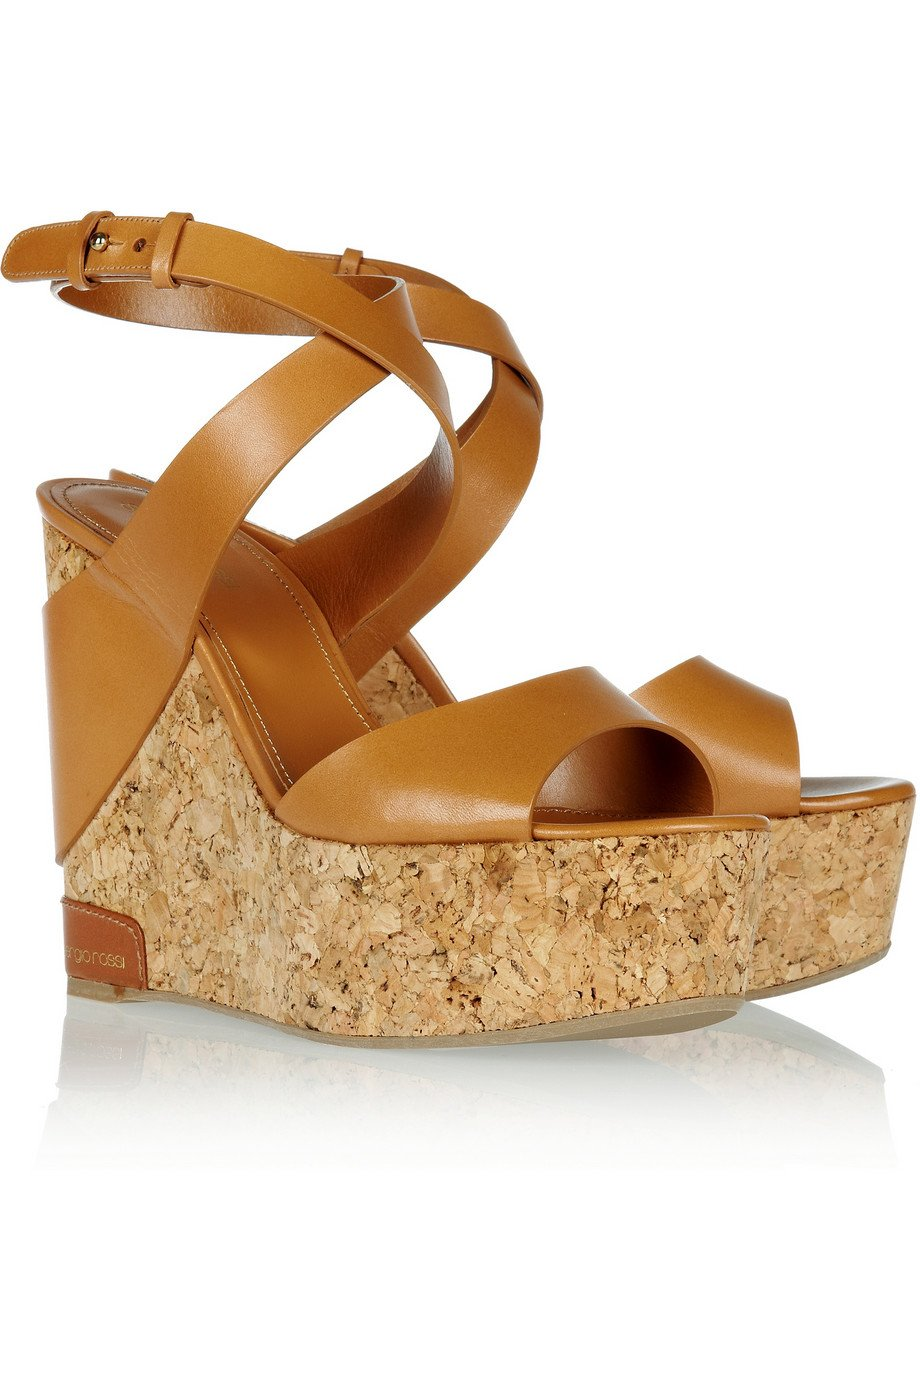 Sergio Rossi Leather and Denim Wedge Sandals Buy Cheap Fashion Style How Much Online Buy Online Outlet Hot Sale Sale Online Discount Best Place LwkKZx65